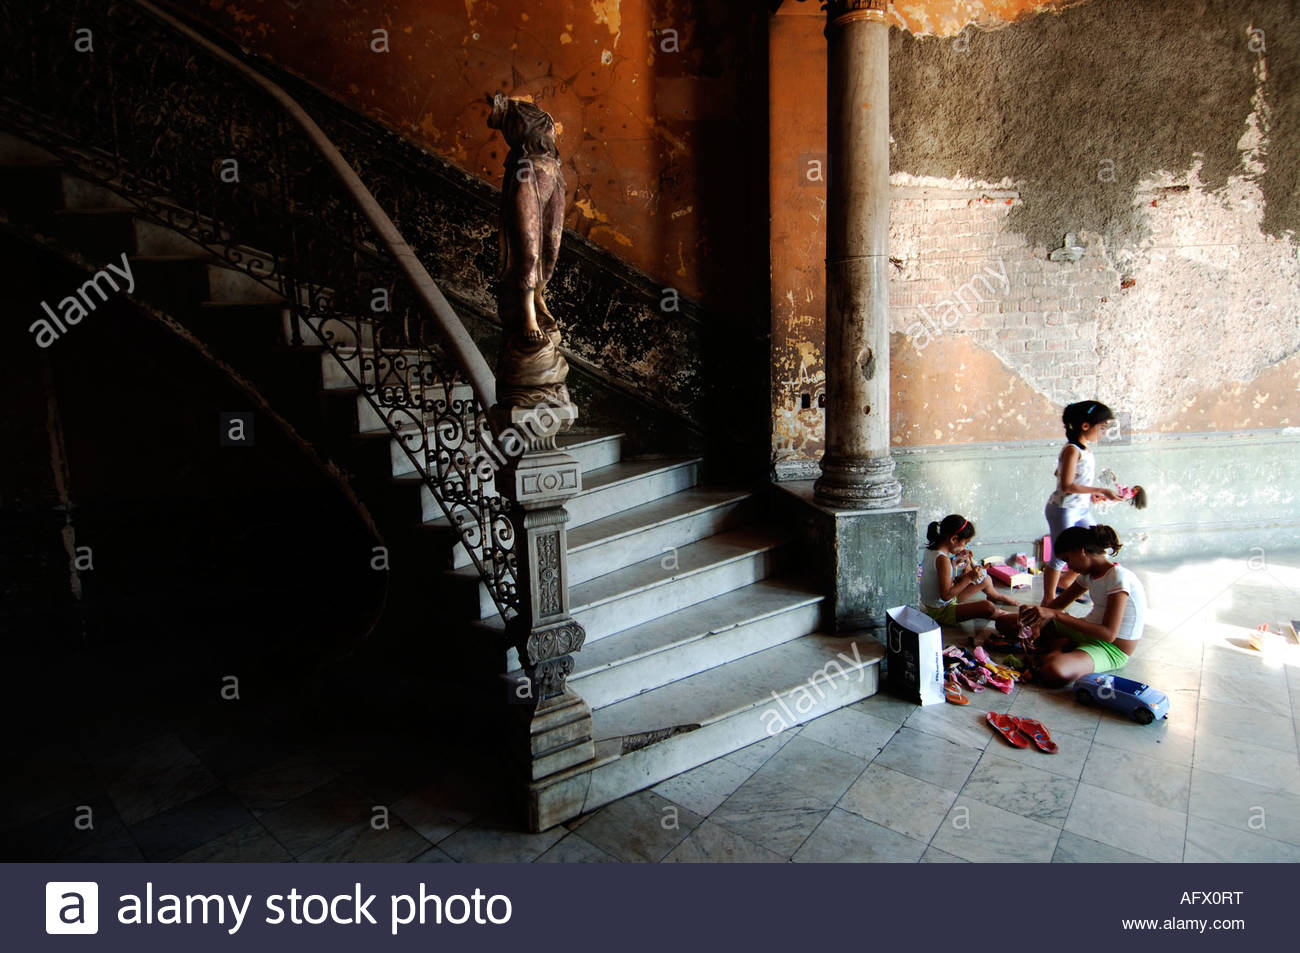 http://obviousmag.org/imagens_e_palavras/2017/08/14/cuba-centro-havana-the-stairs-of-the-restaurant-paladar-la-guarida-AFX0RT.jpg